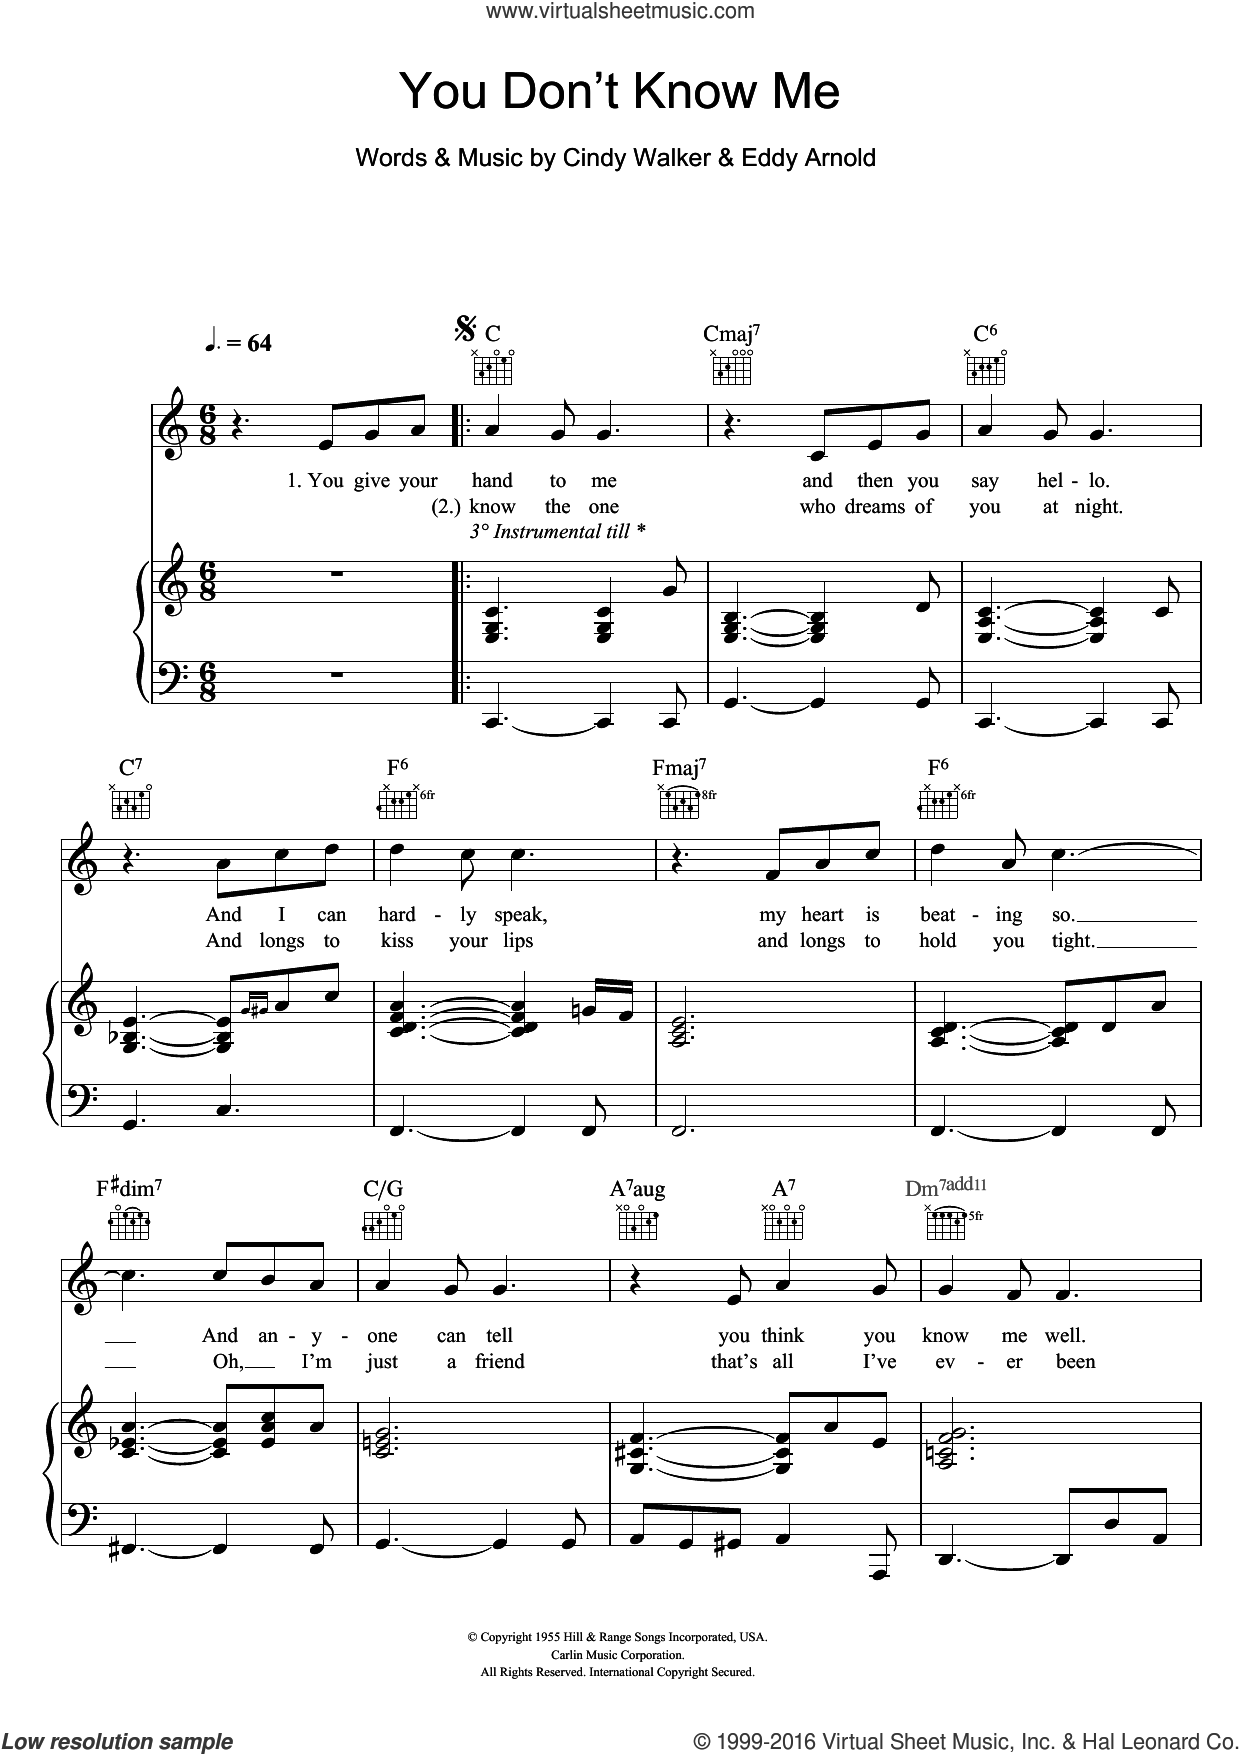 You Don't Know Me sheet music for voice, piano or guitar by Michael Buble, Ray Charles, Cindy Walker and Eddy Arnold, intermediate